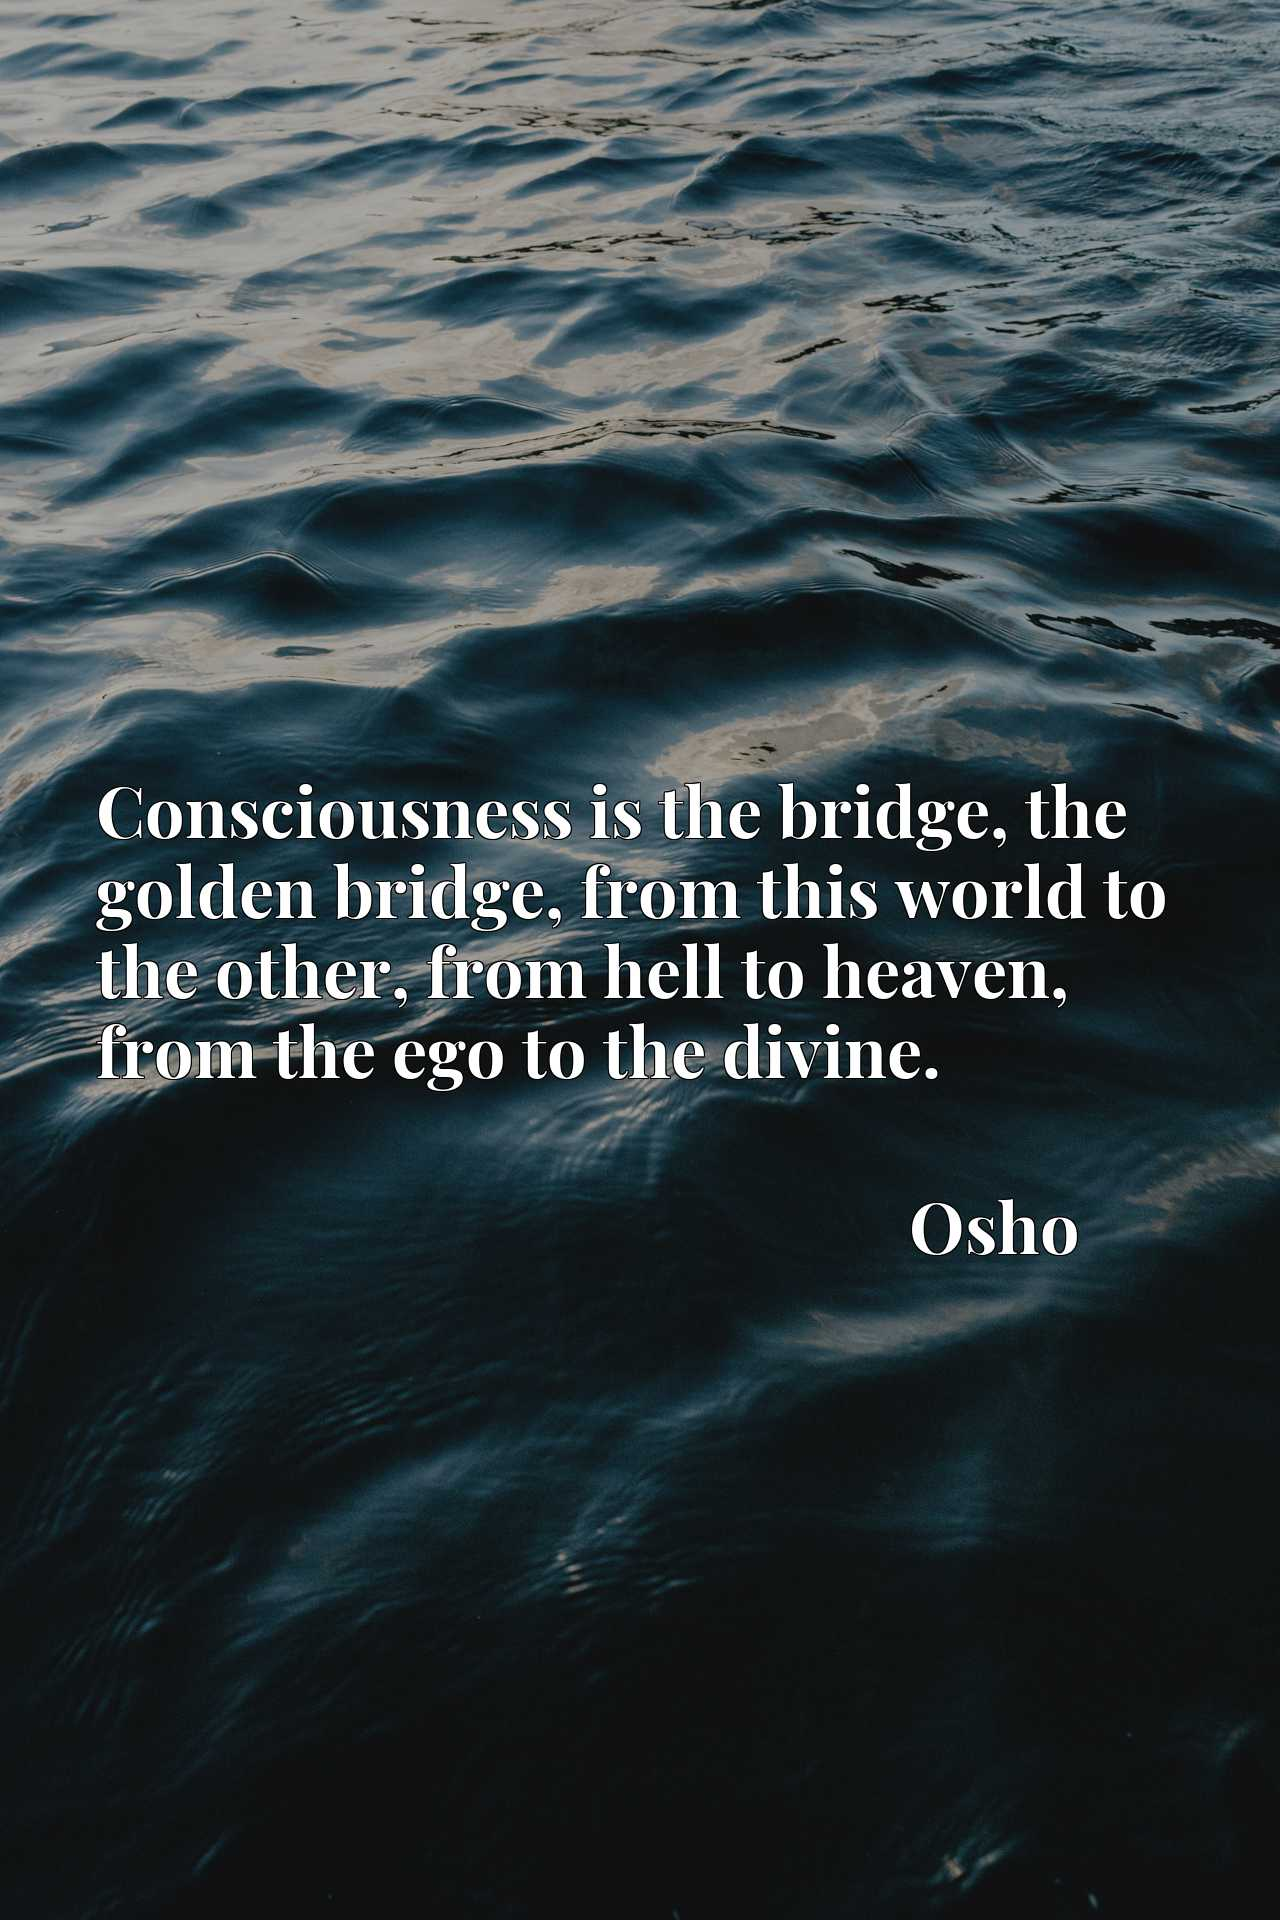 Consciousness is the bridge, the golden bridge, from this world to the other, from hell to heaven, from the ego to the divine.